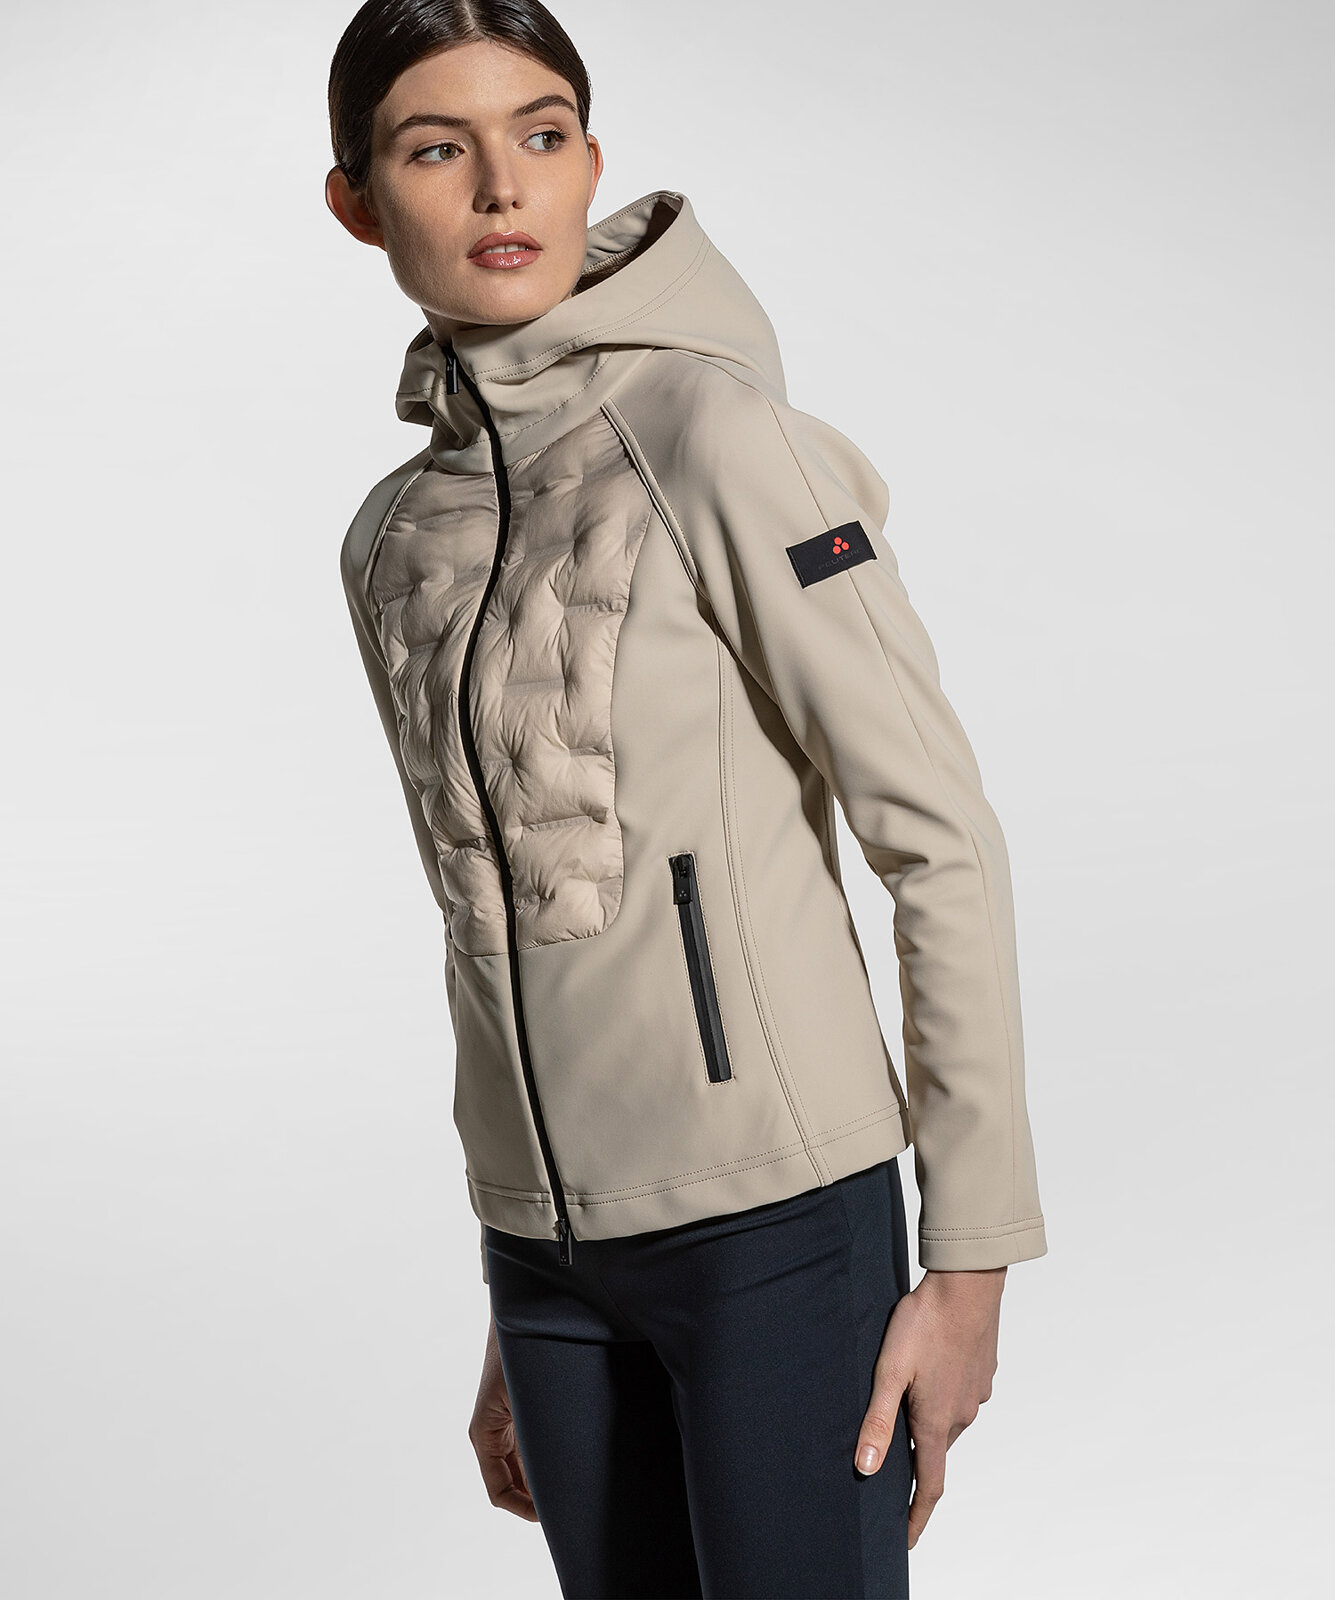 Double Fabric Hooded Bomber Jacket - Peuterey